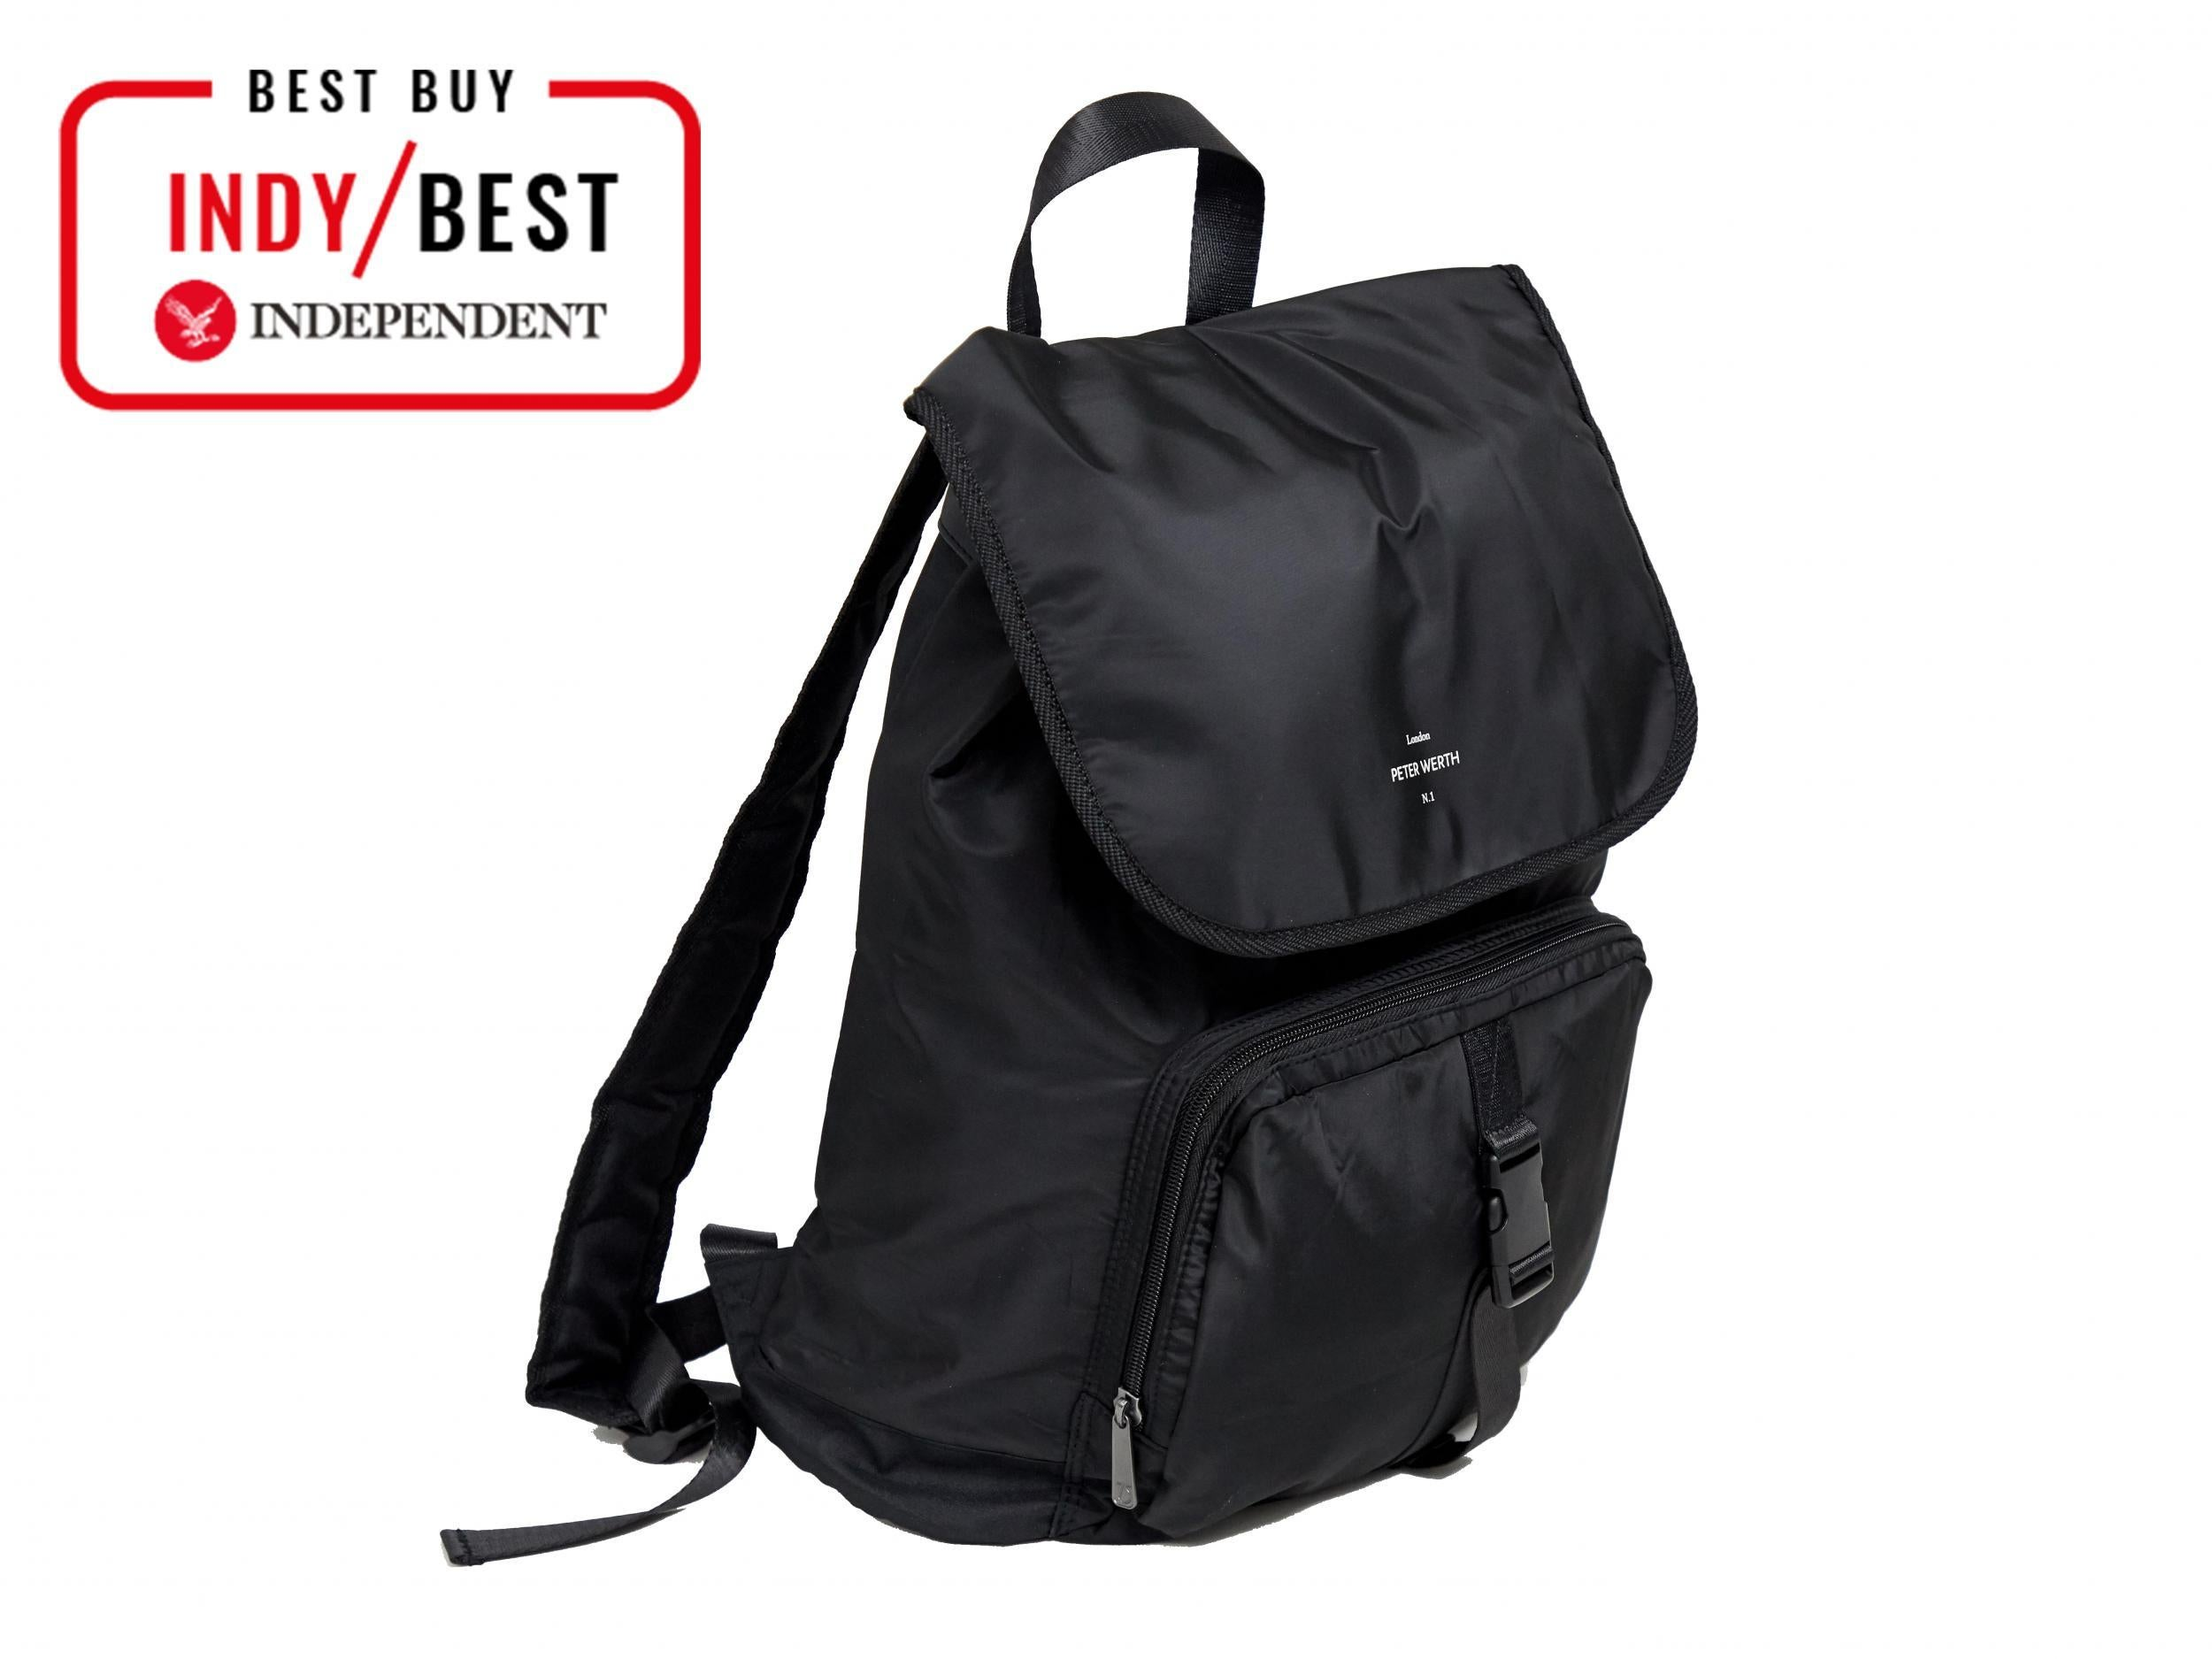 a23aac173b4e 11 best men's backpacks perfect for both a weekend getaway and the ...